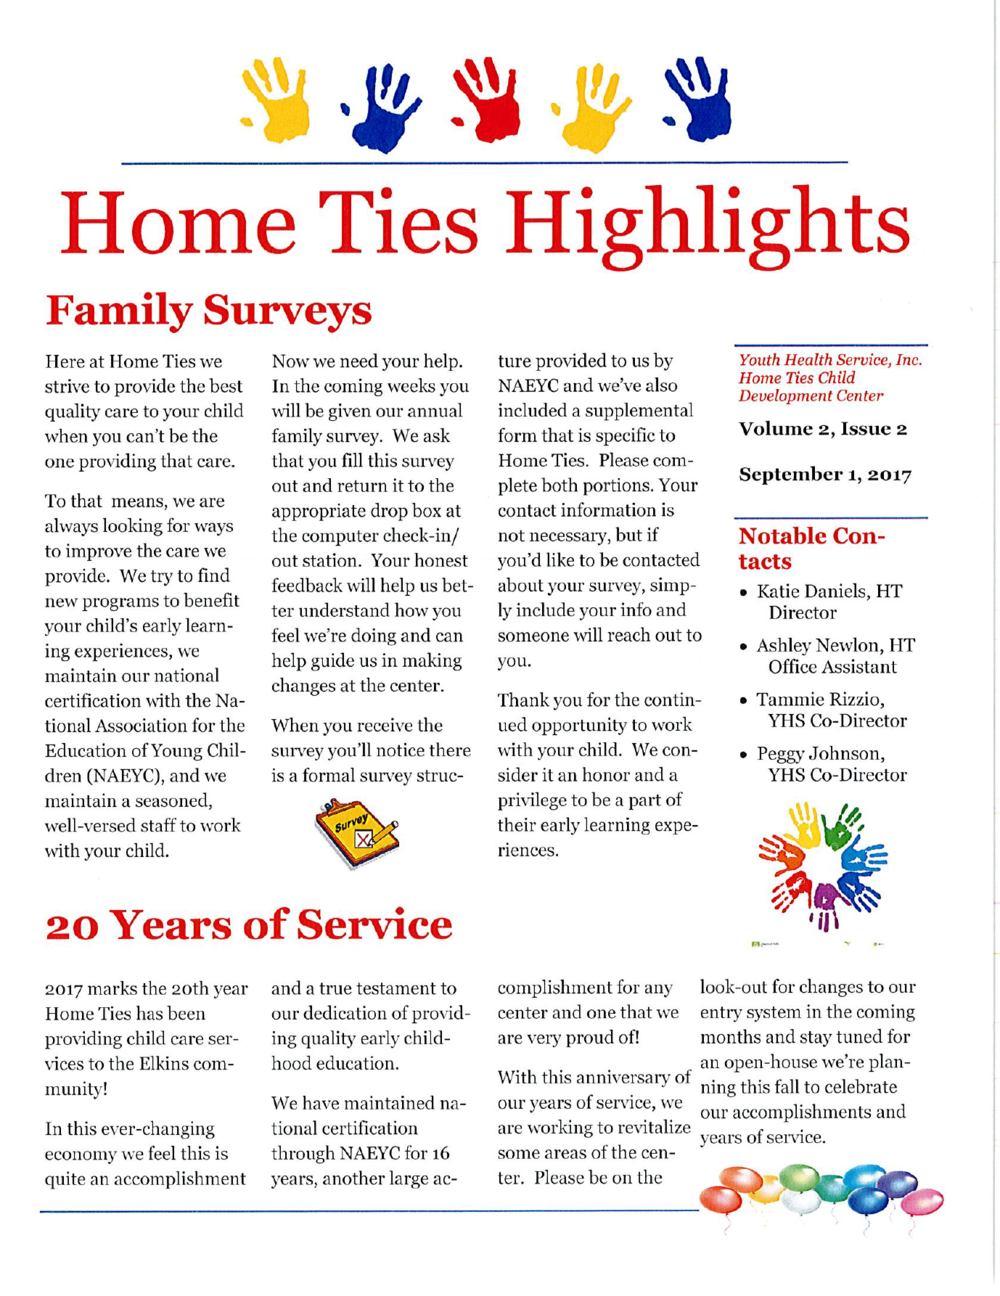 DOWNLOAD OUR HIGHLIGHTS NEWSLETTER